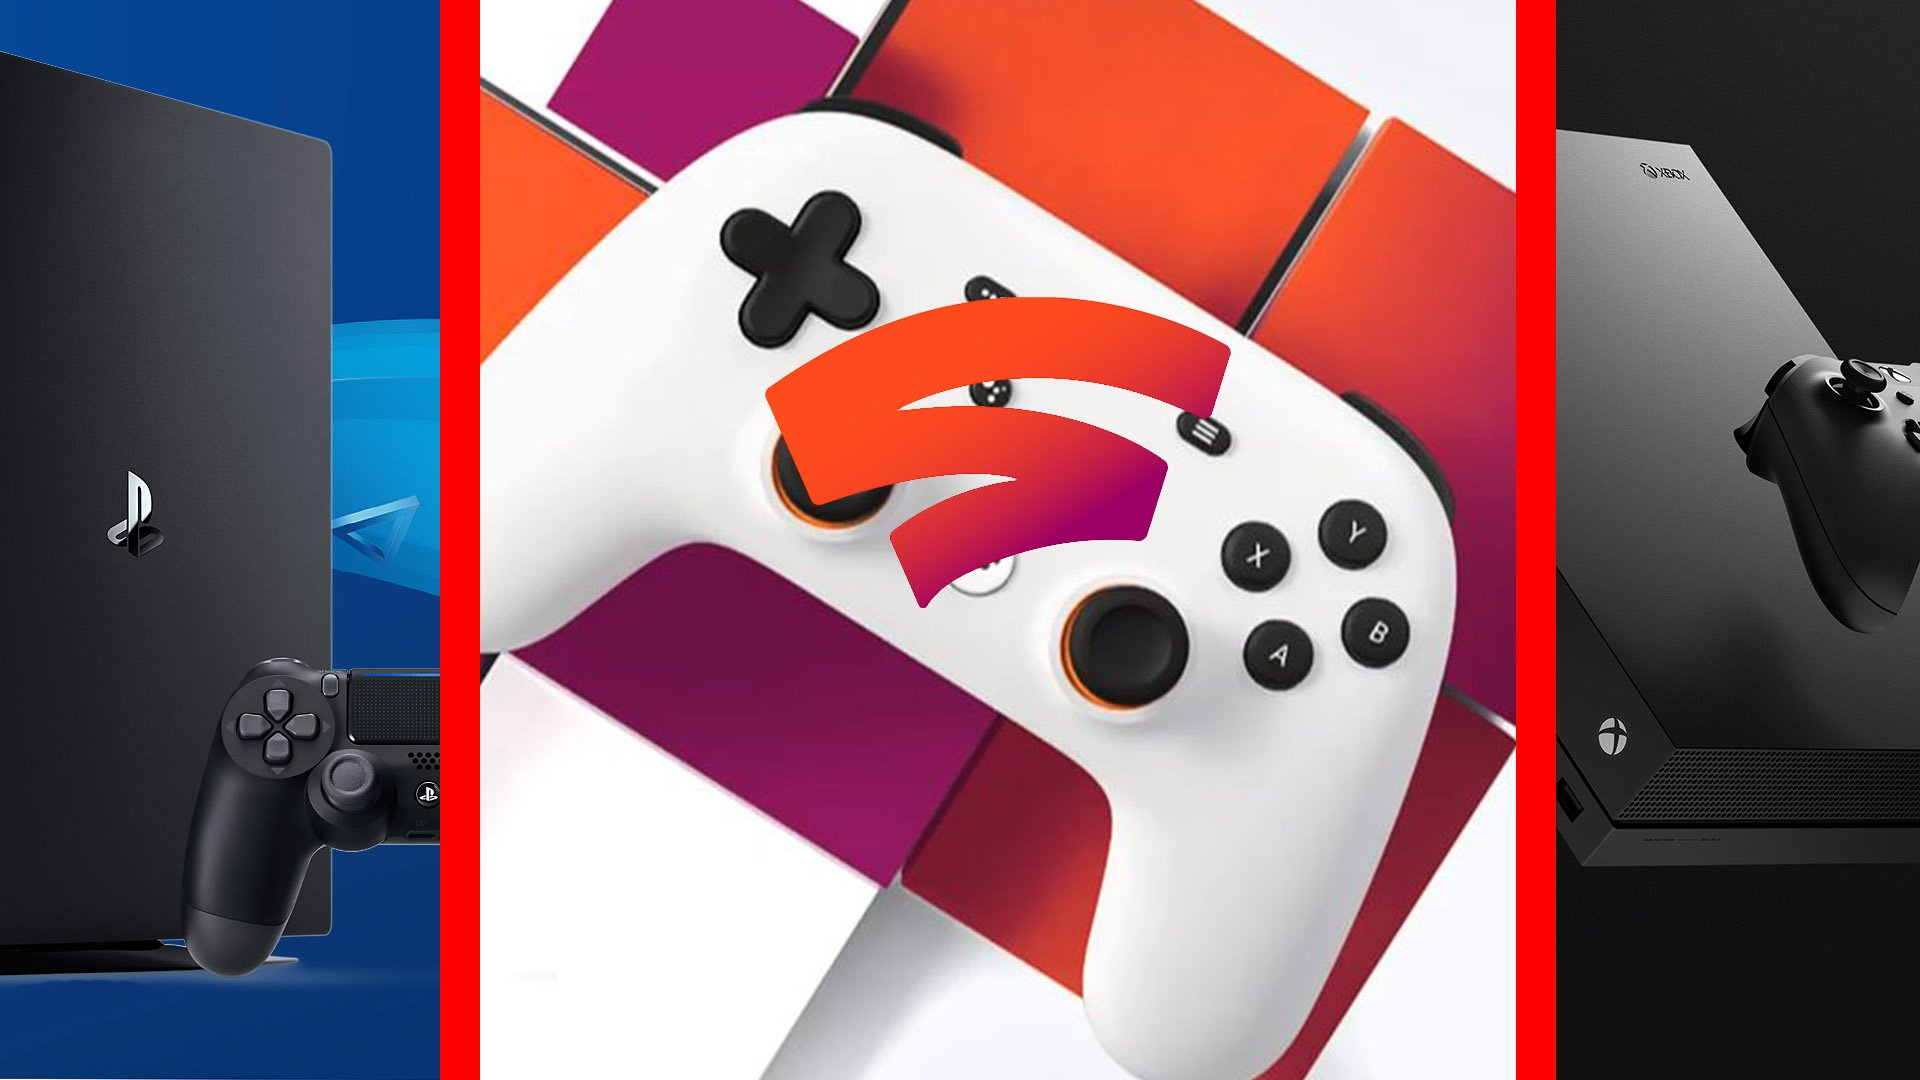 Google Looking into Mod Support for Stadia